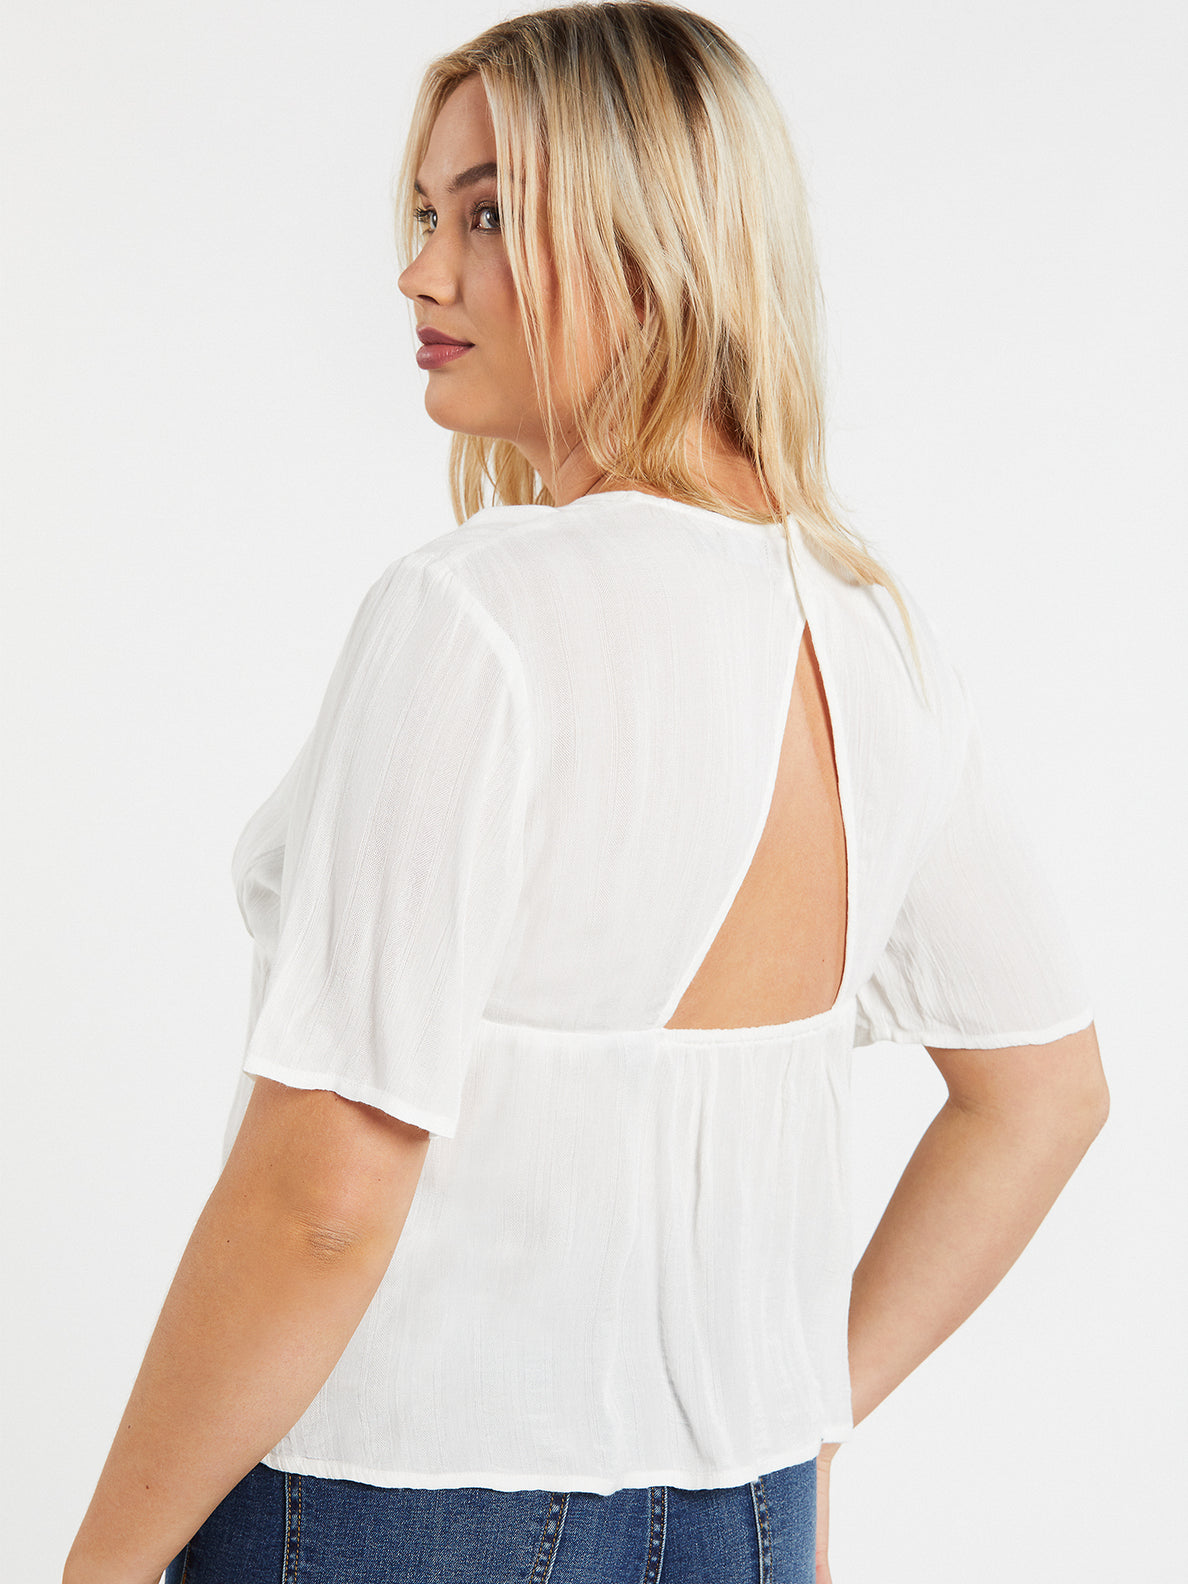 Coco Button Thru Top - Star White (B0432004_SWH) [19]